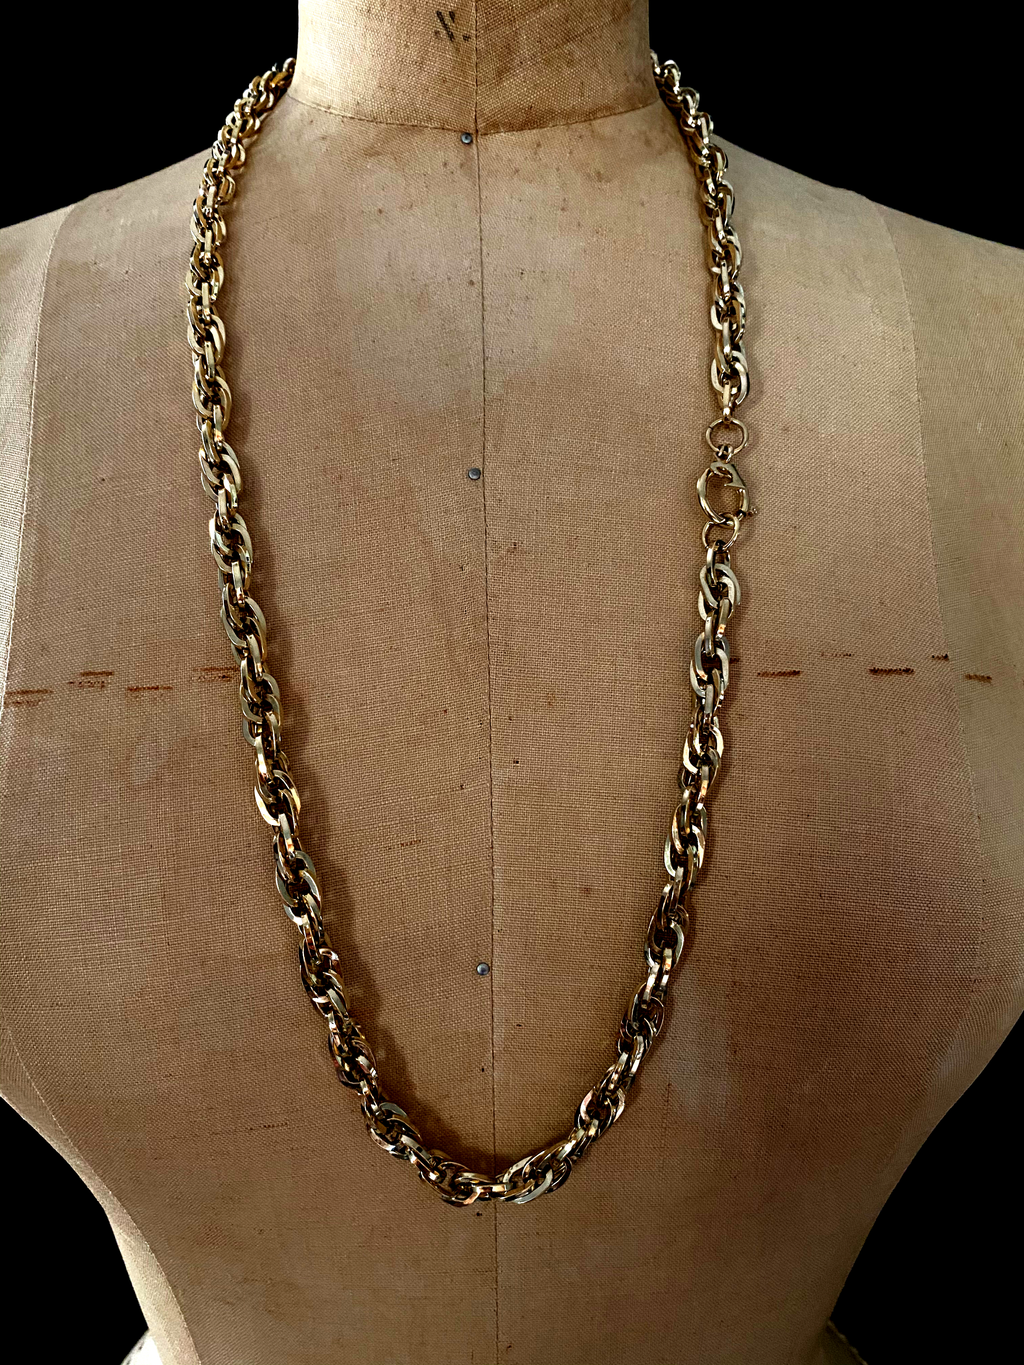 Pierre Cardin Gold Long Layering Chain Vintage Necklace